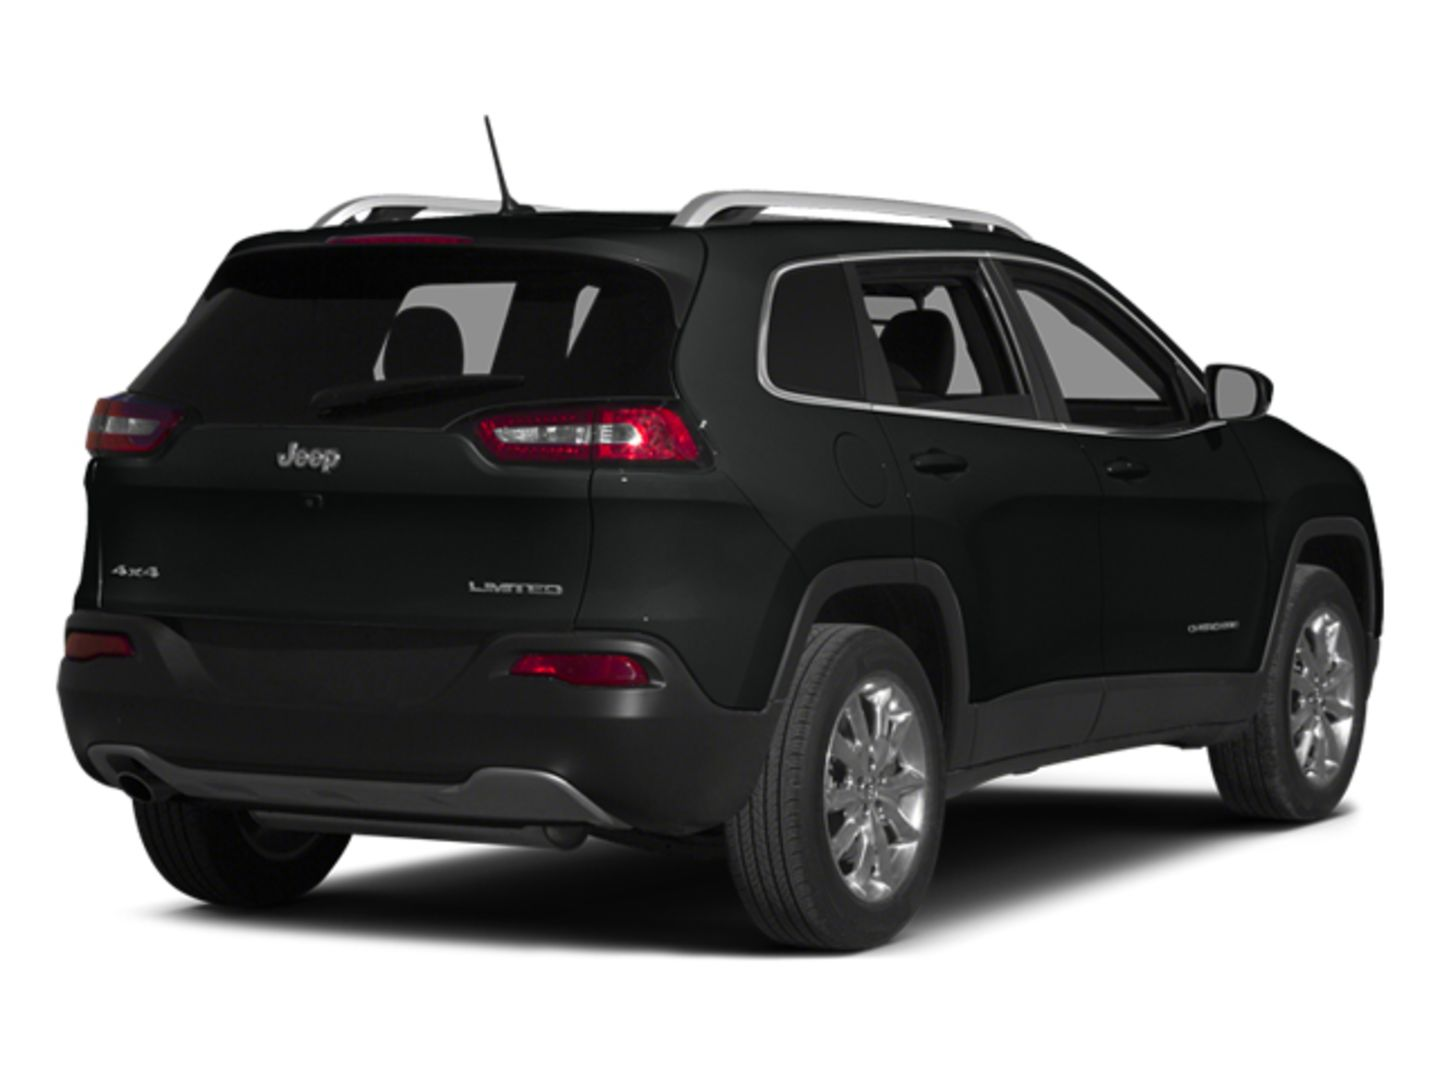 2014 Jeep Cherokee Limited for sale in Spruce Grove, Alberta